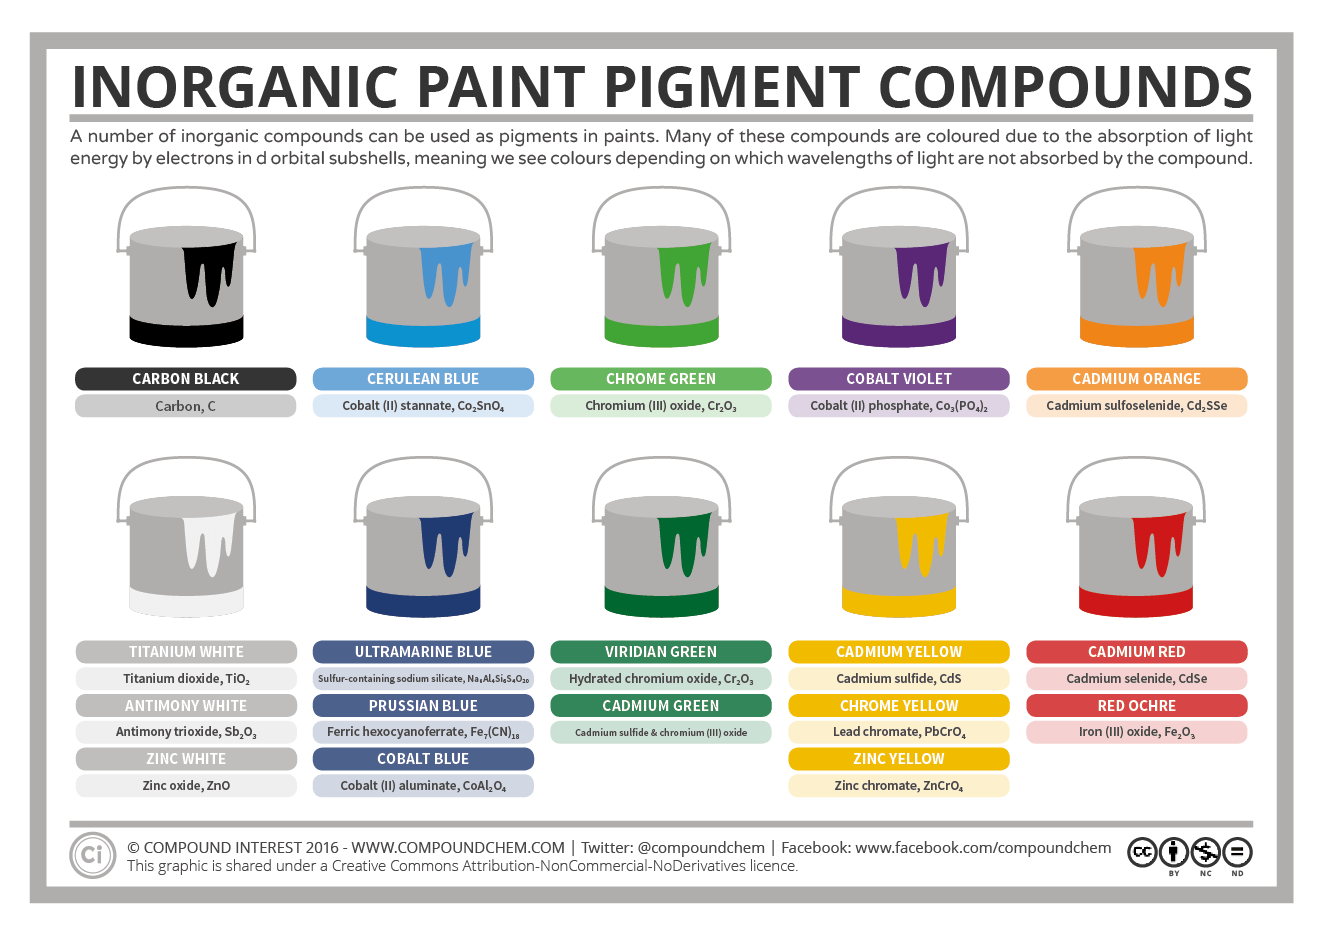 Inorganic Pigment Compounds – The Chemistry of Paint | Compound